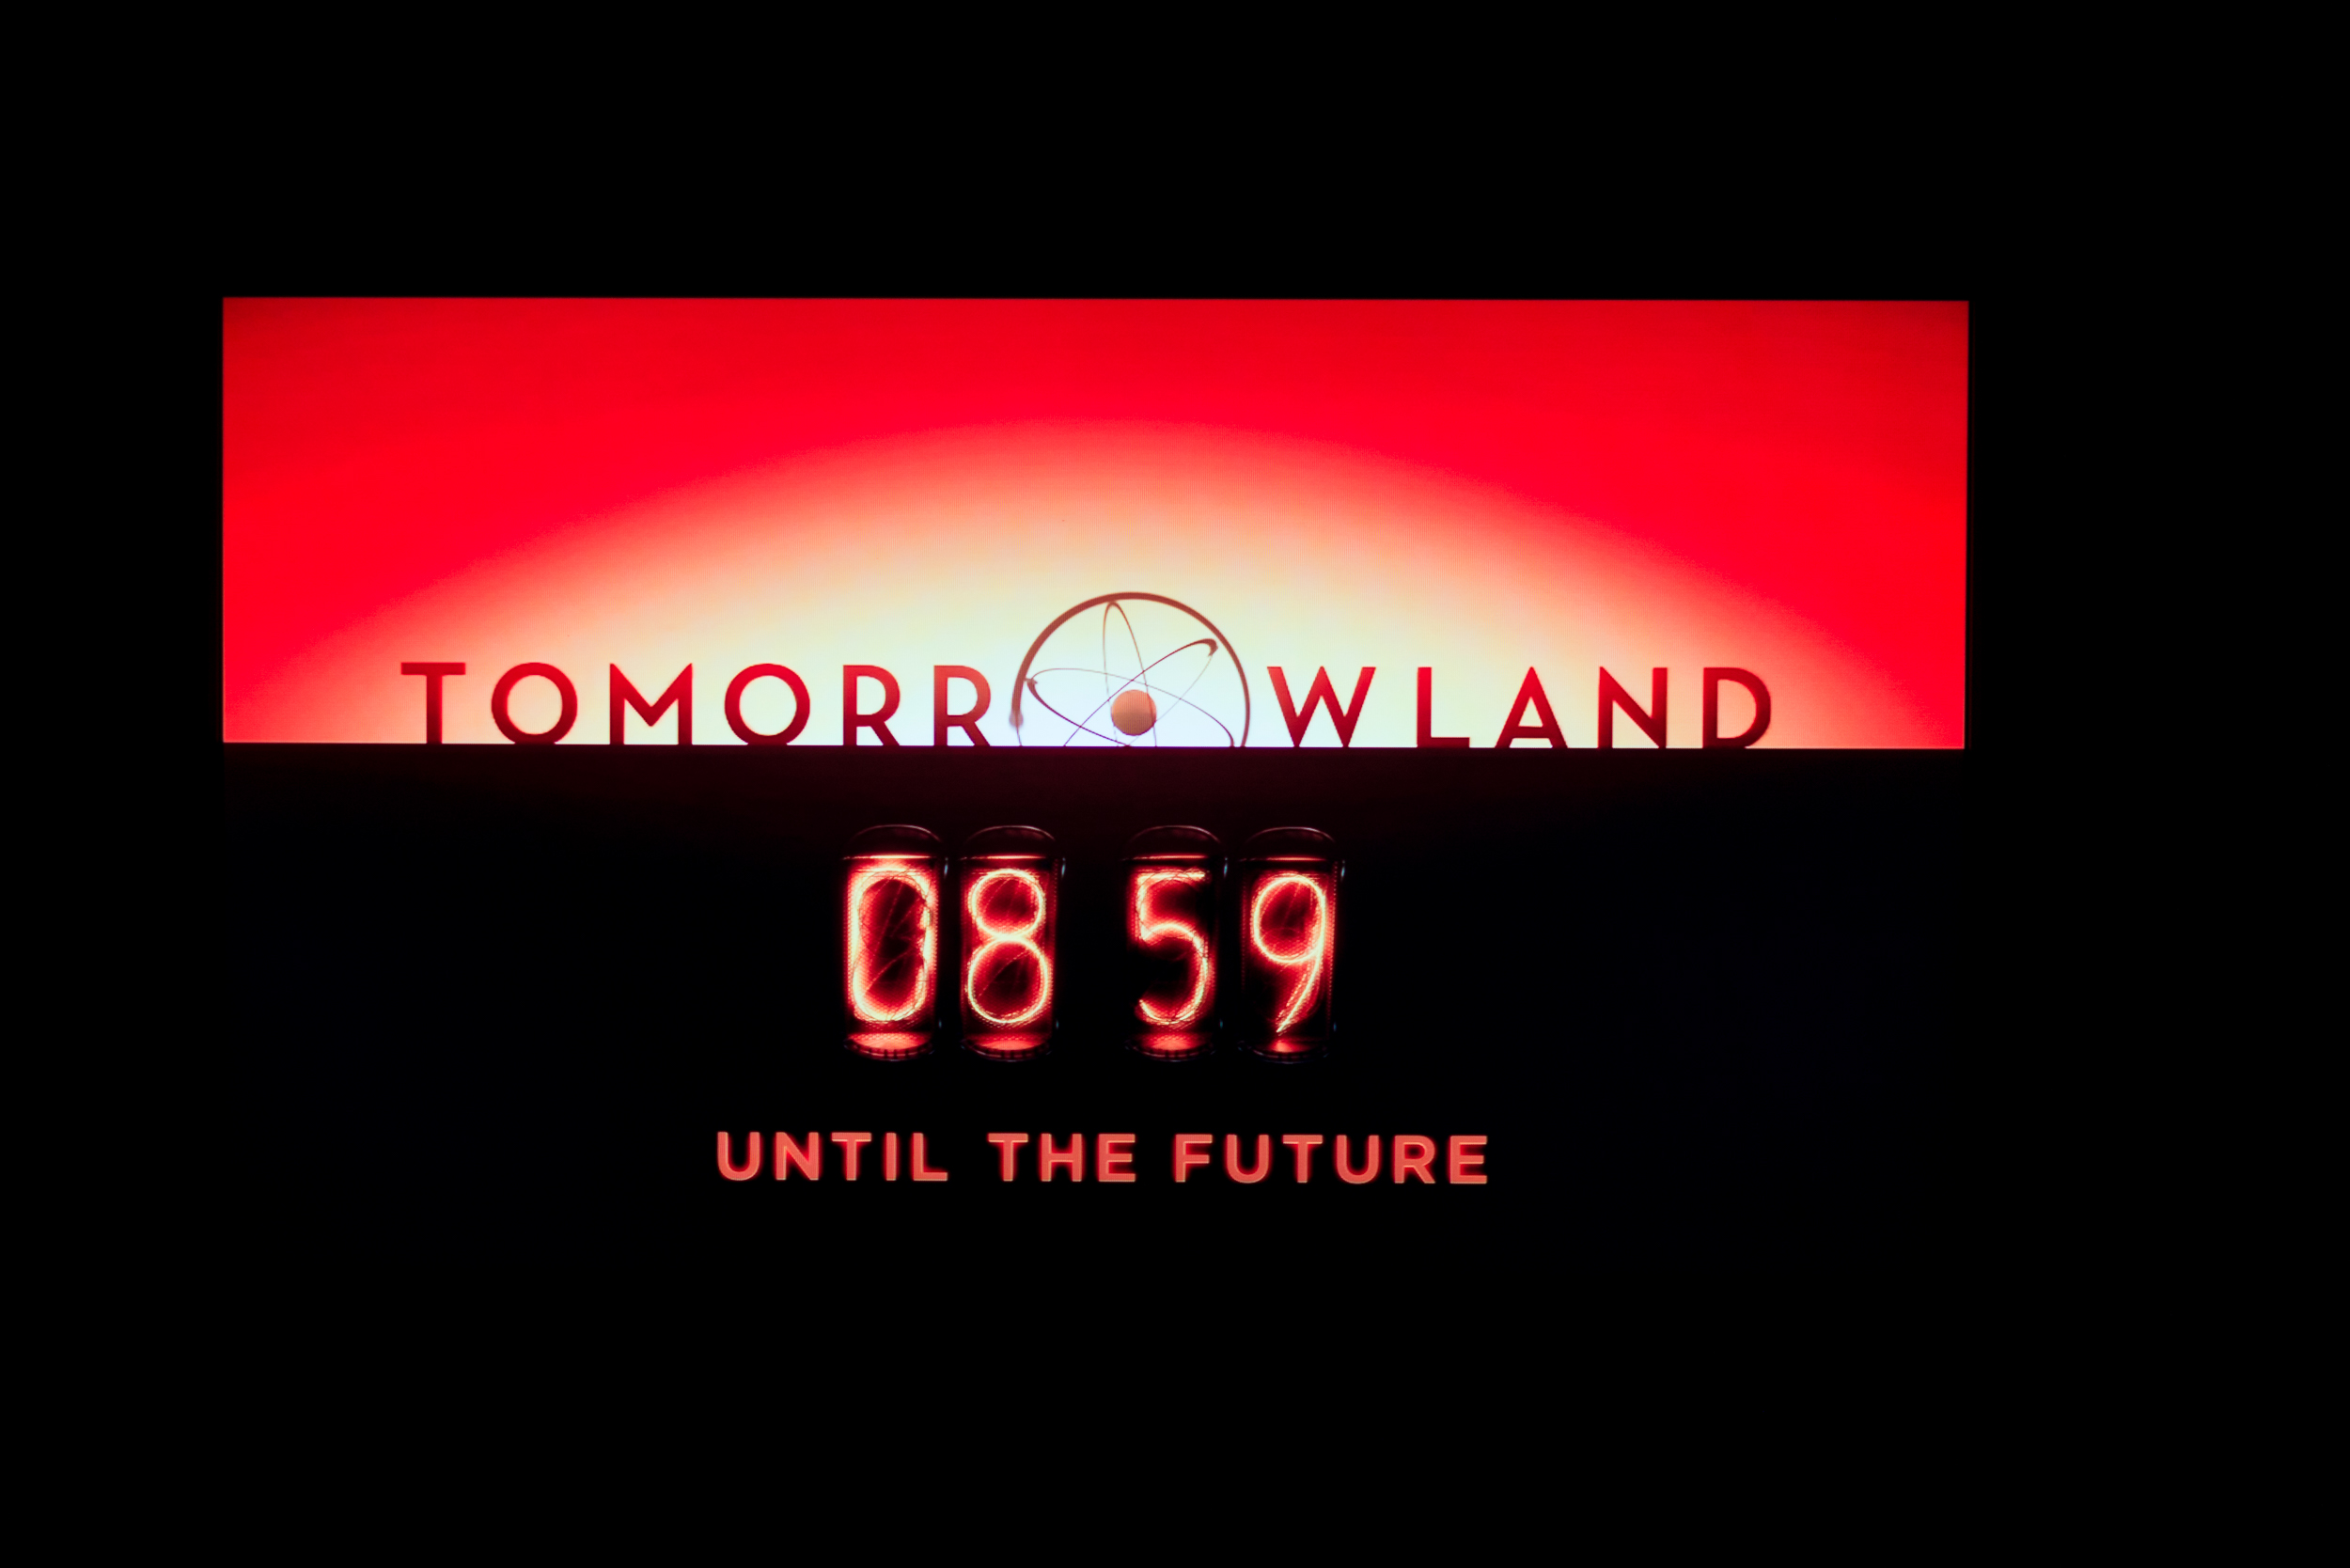 Countdown until Tomorrowland movie starts